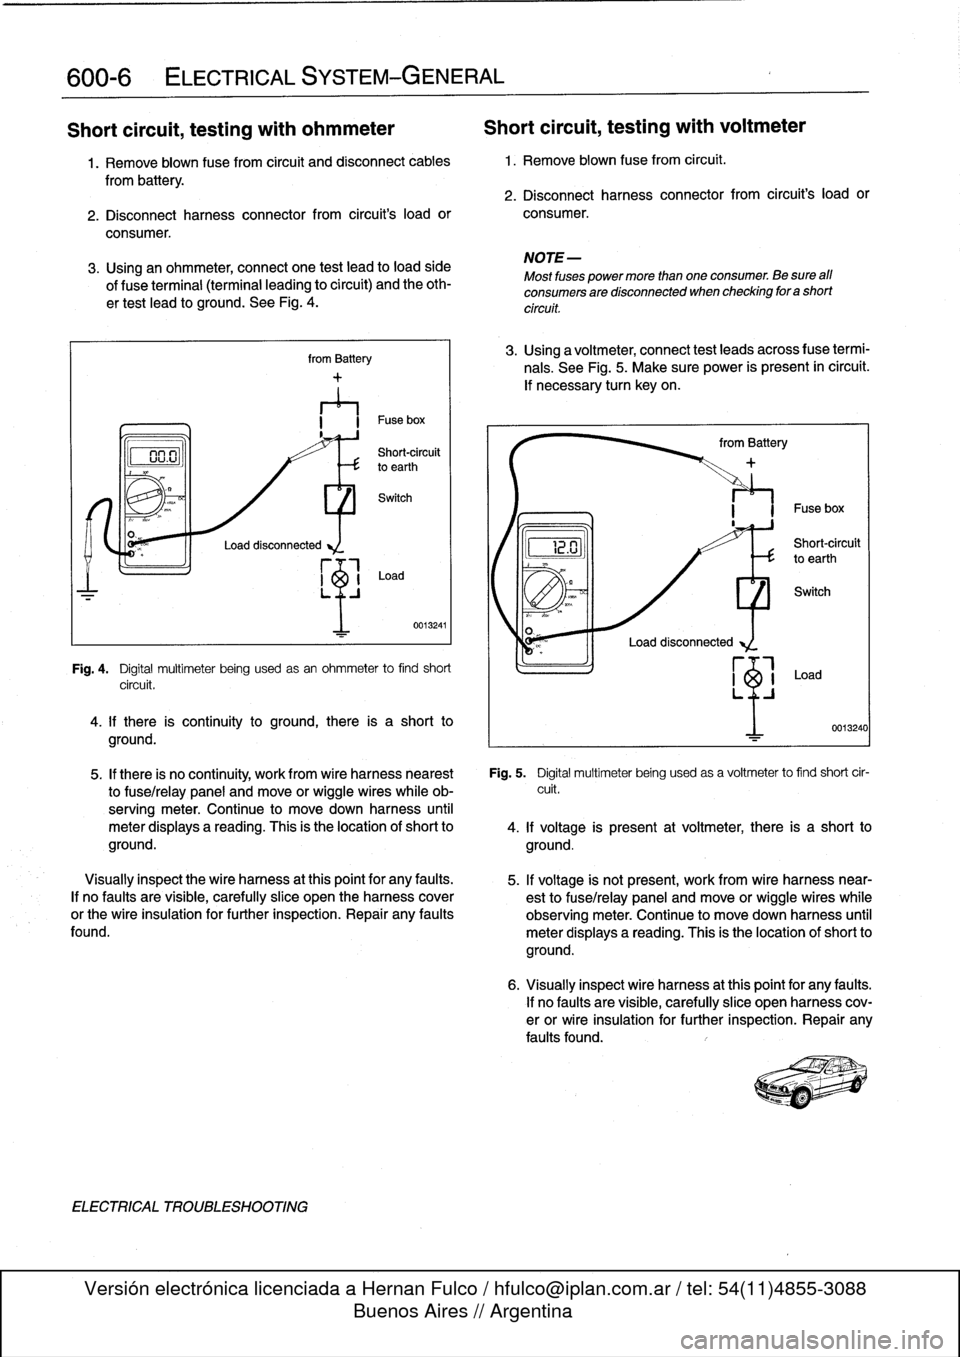 Fuses Bmw 325i 1992 E36 Workshop Manual Fuse Box Page 386